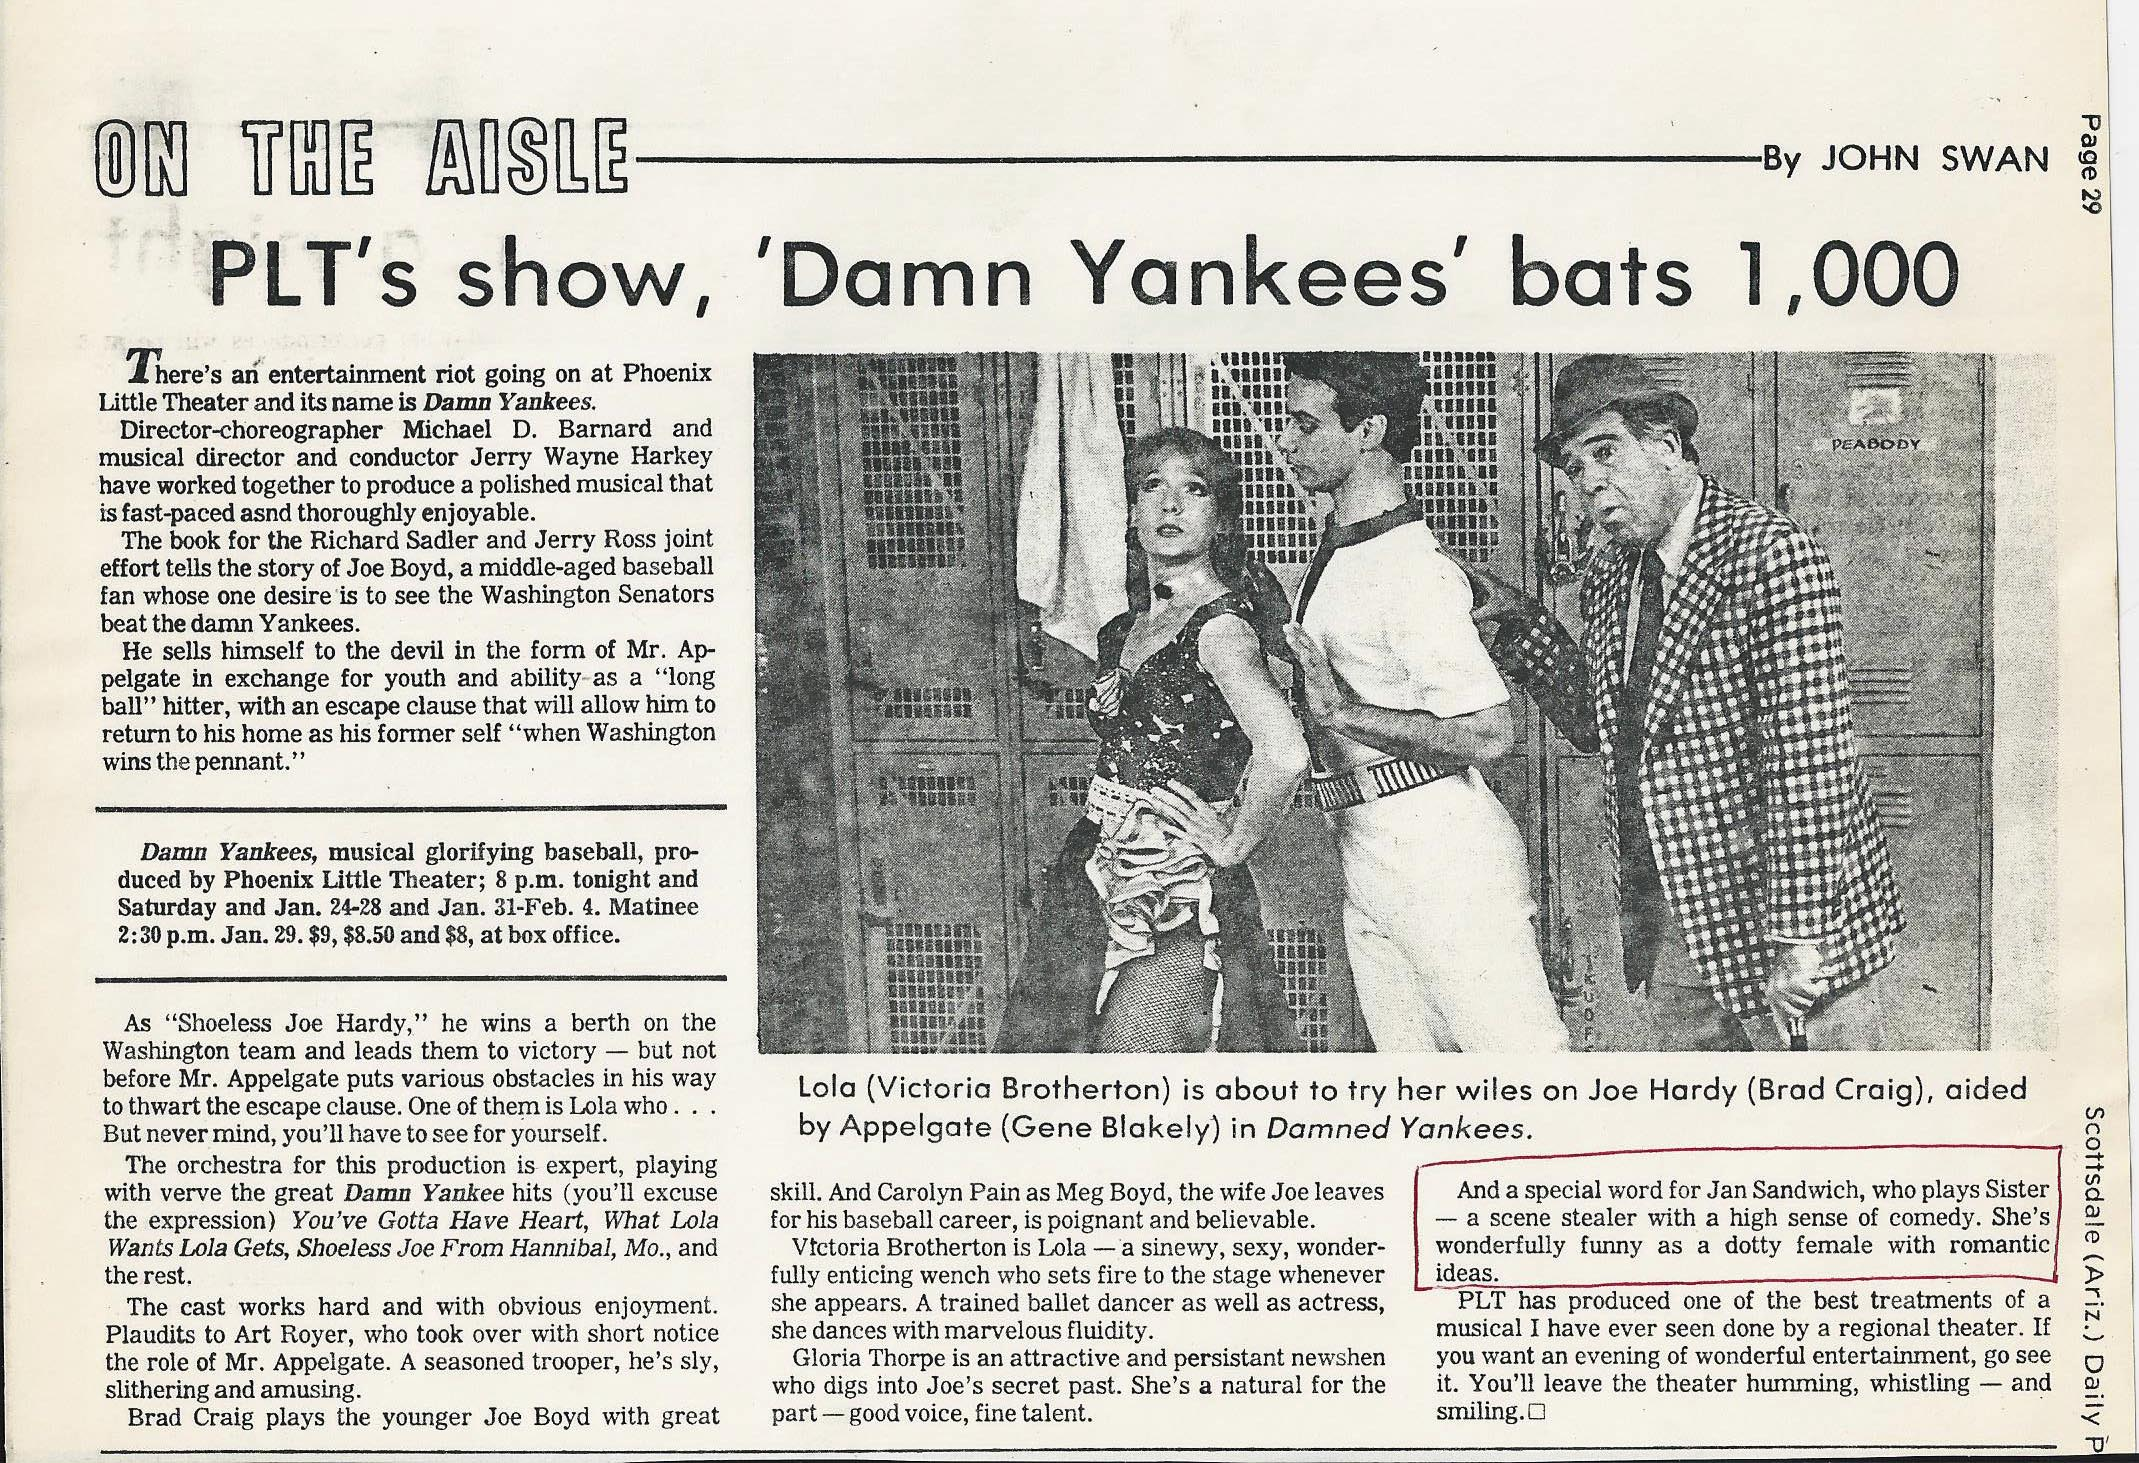 """Damn Yankees"" was produced at Phoenix Little Theatre sometime in the 1970s or '80s. Clipping from the collection of Jan Sandwich."